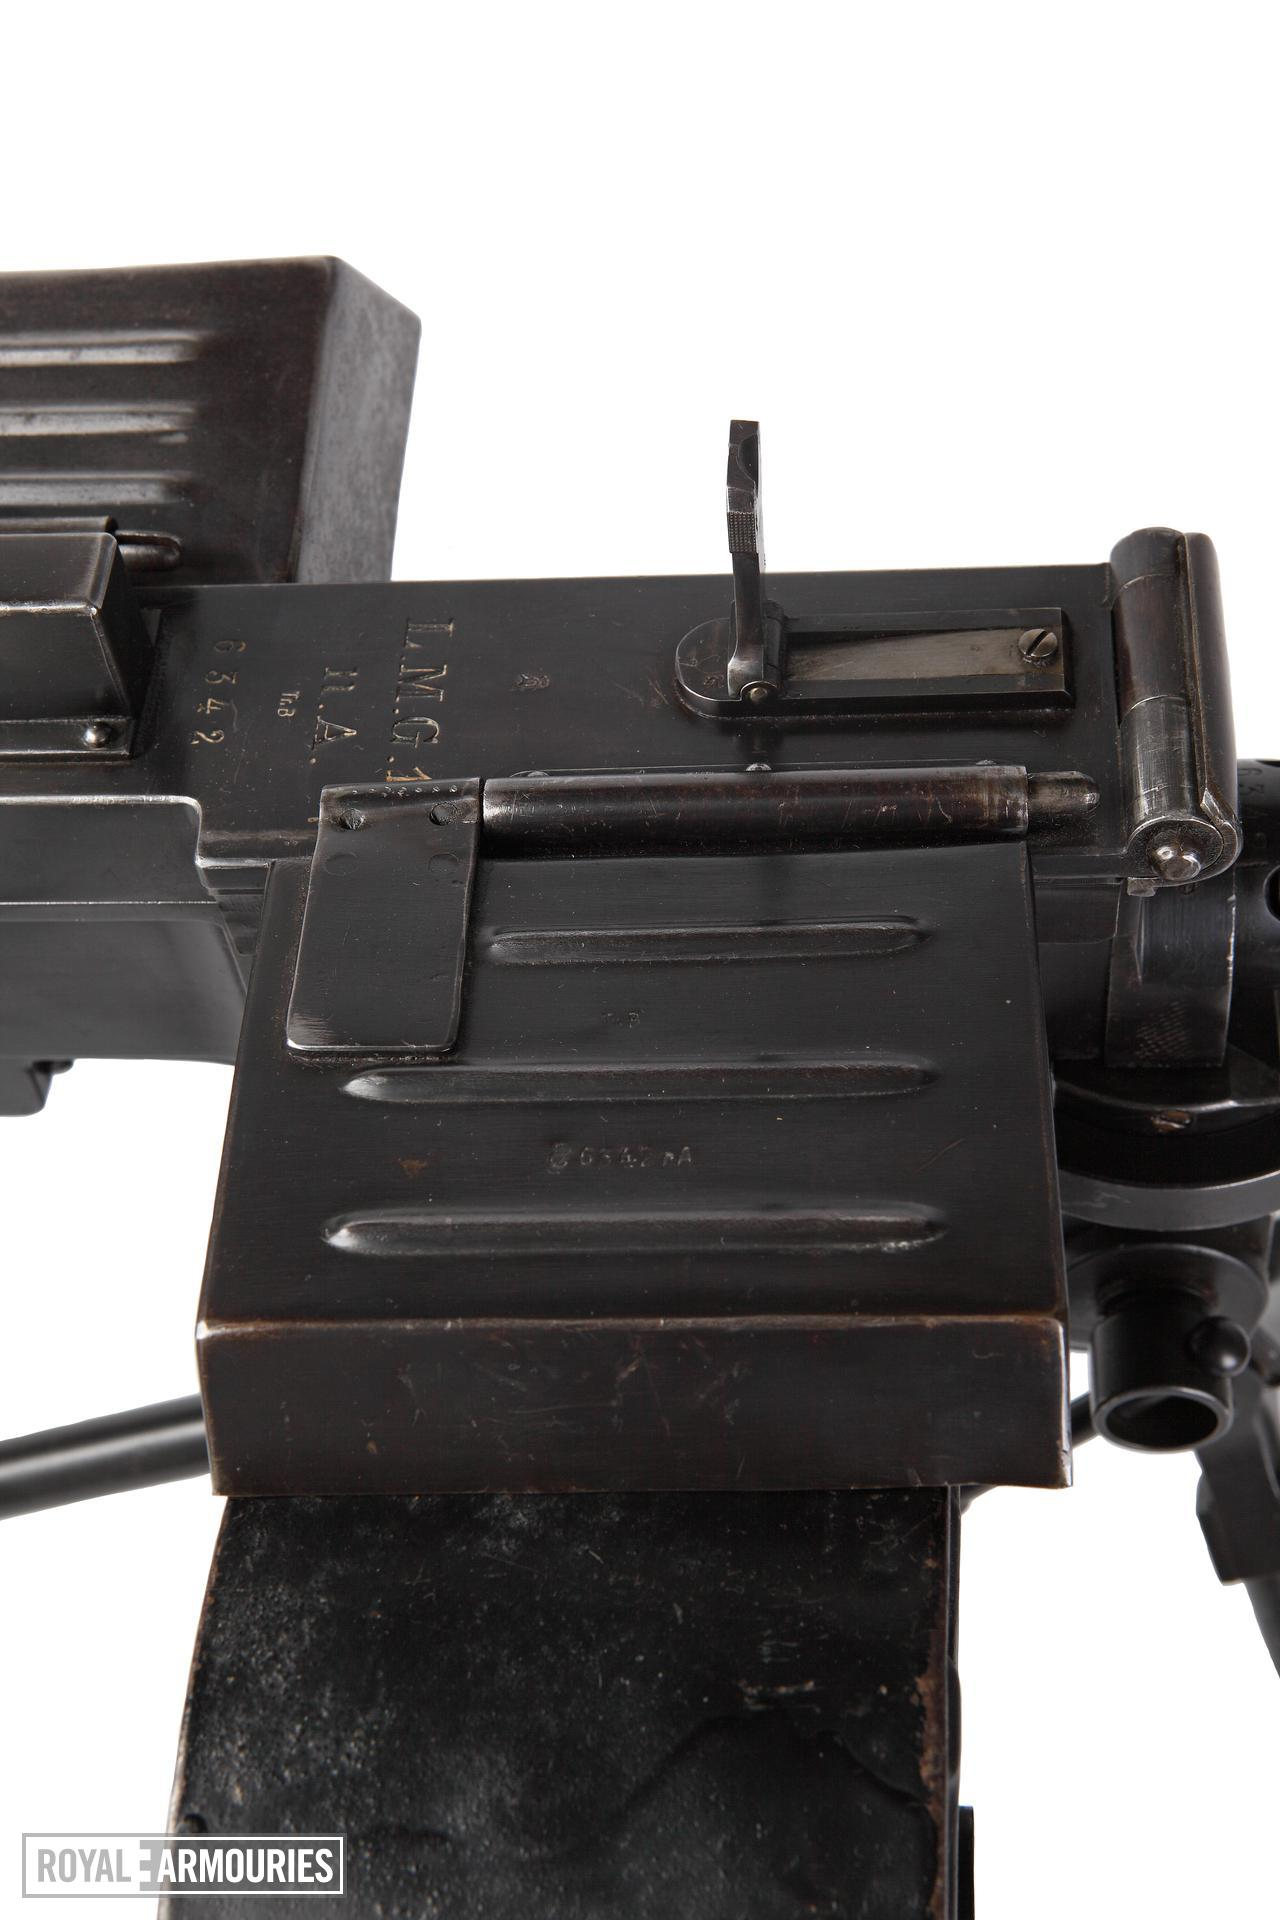 Bergmann light machine gun (MG 15Na), Germany, 1918, with small tripod mount and krank loaded Kurbel drum.